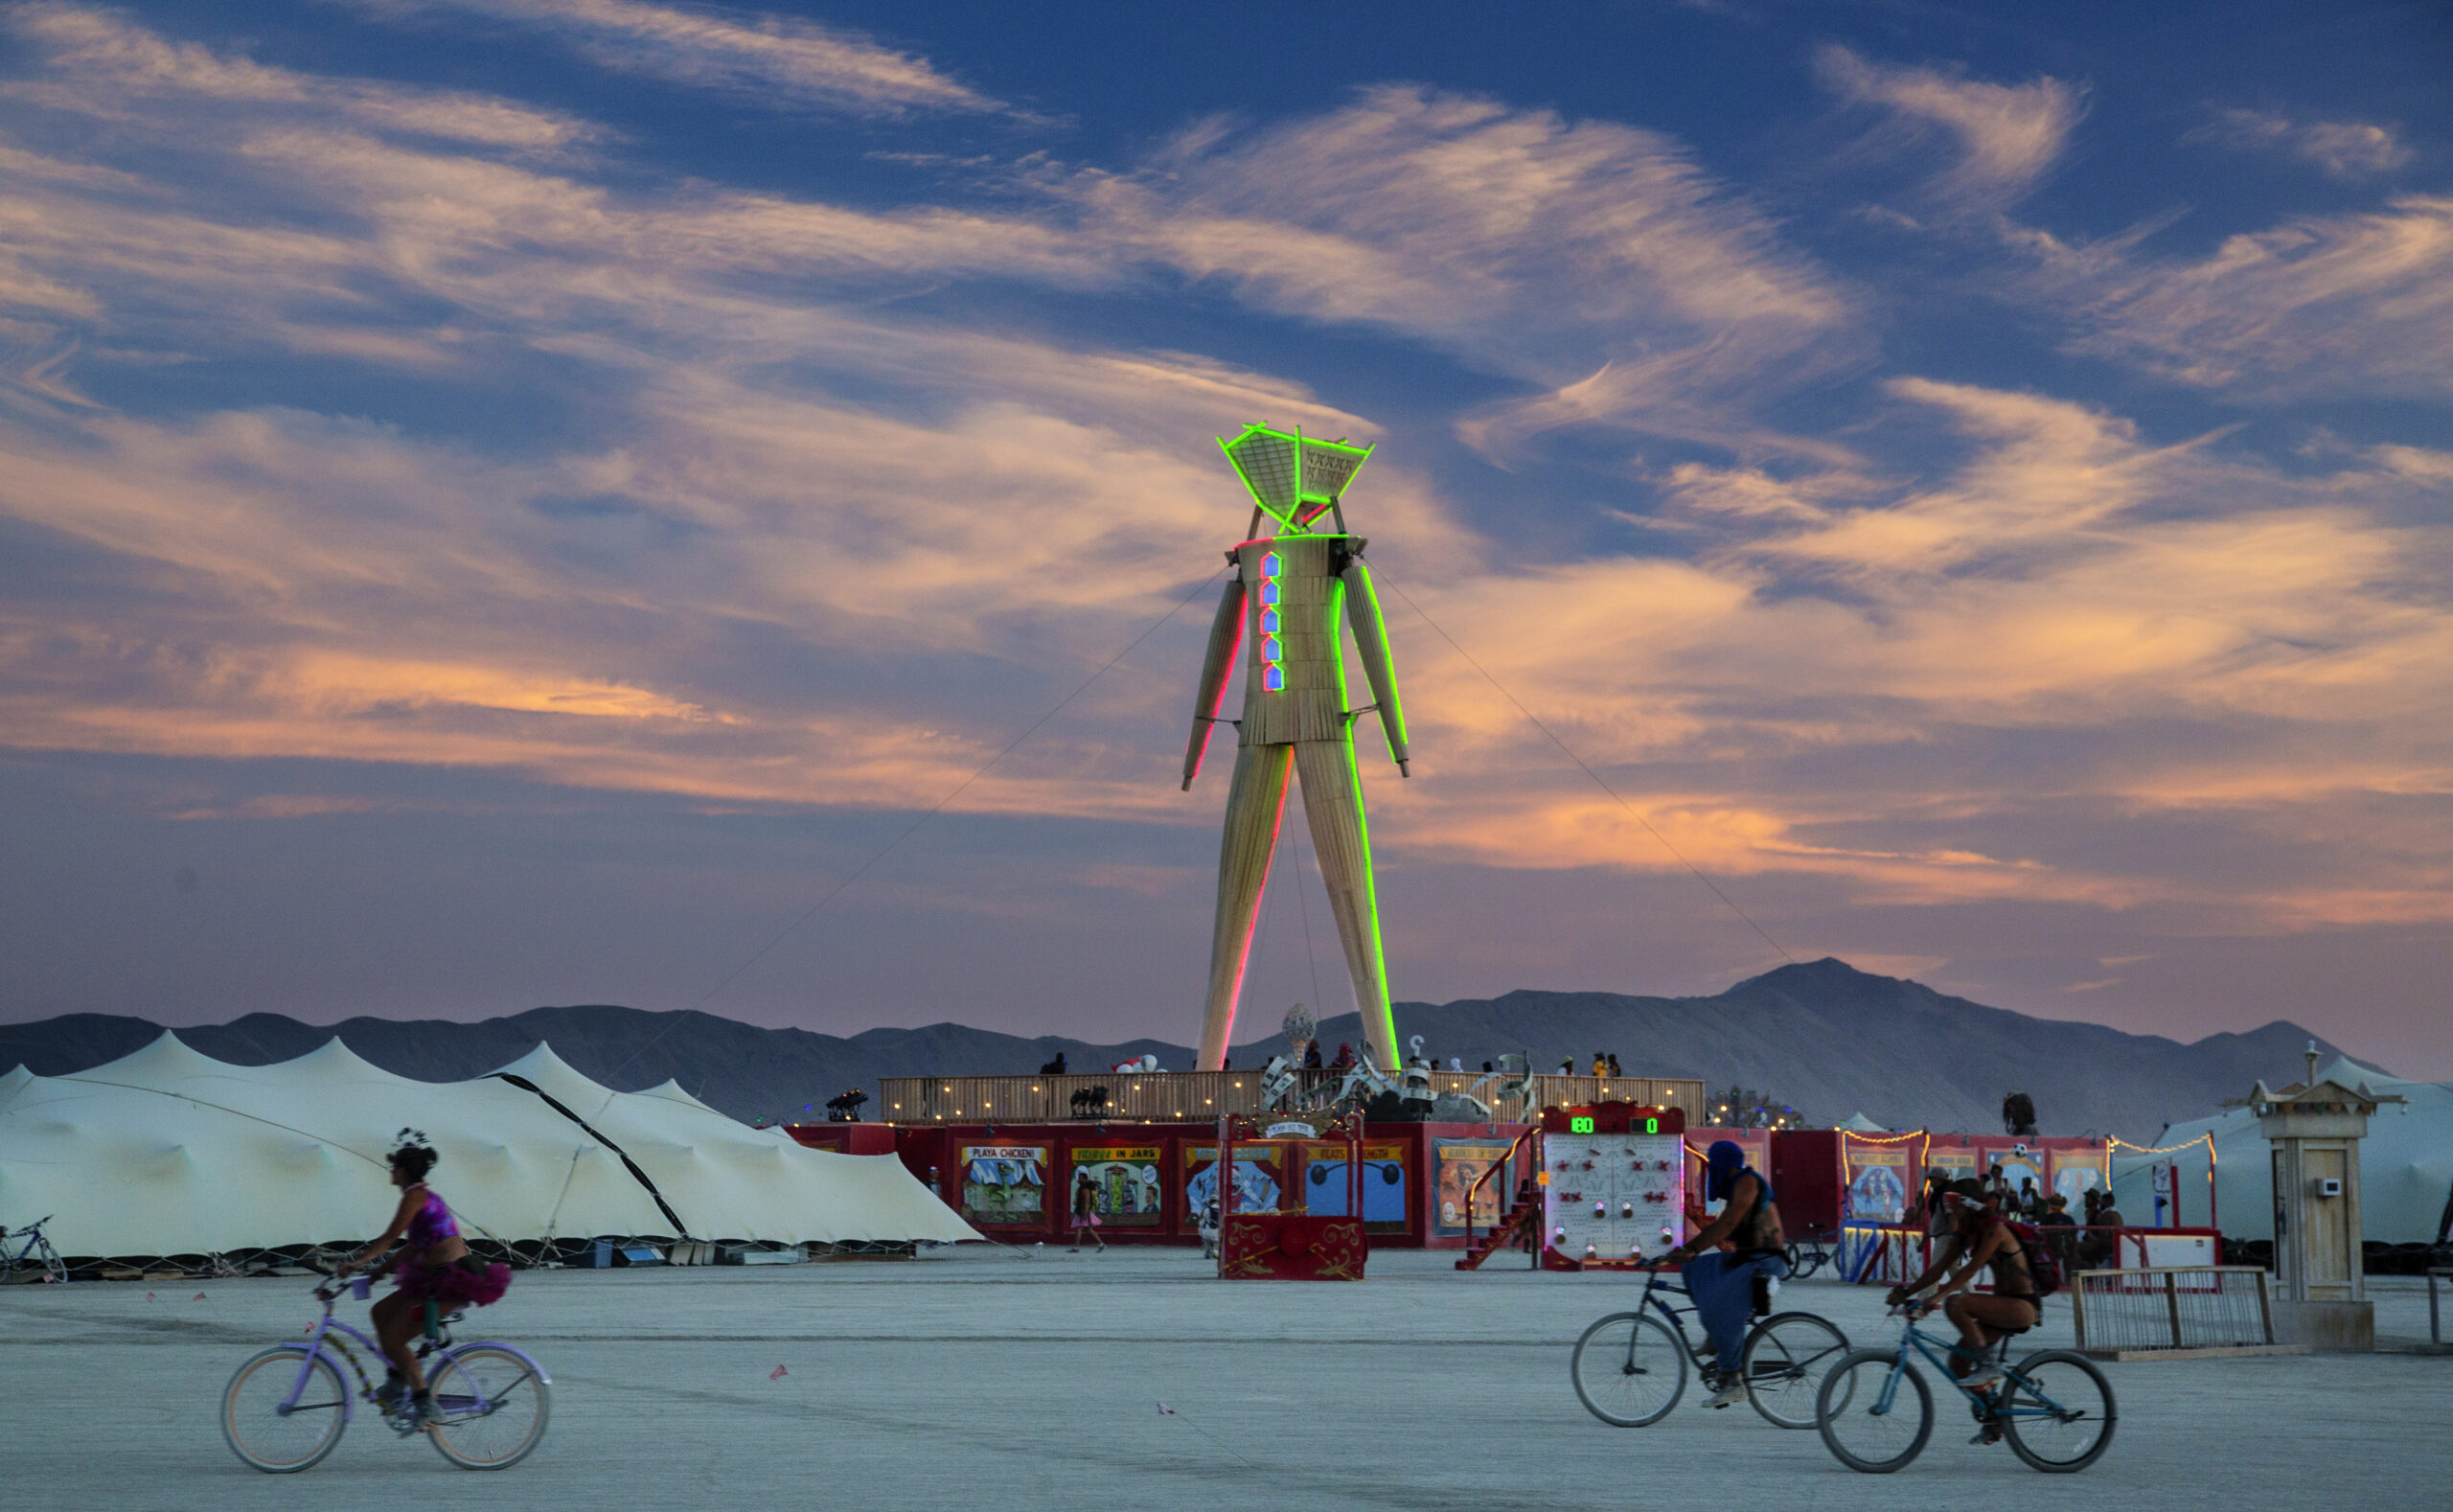 From Glowflow to Burning Man: The Evolution of Interactive Media